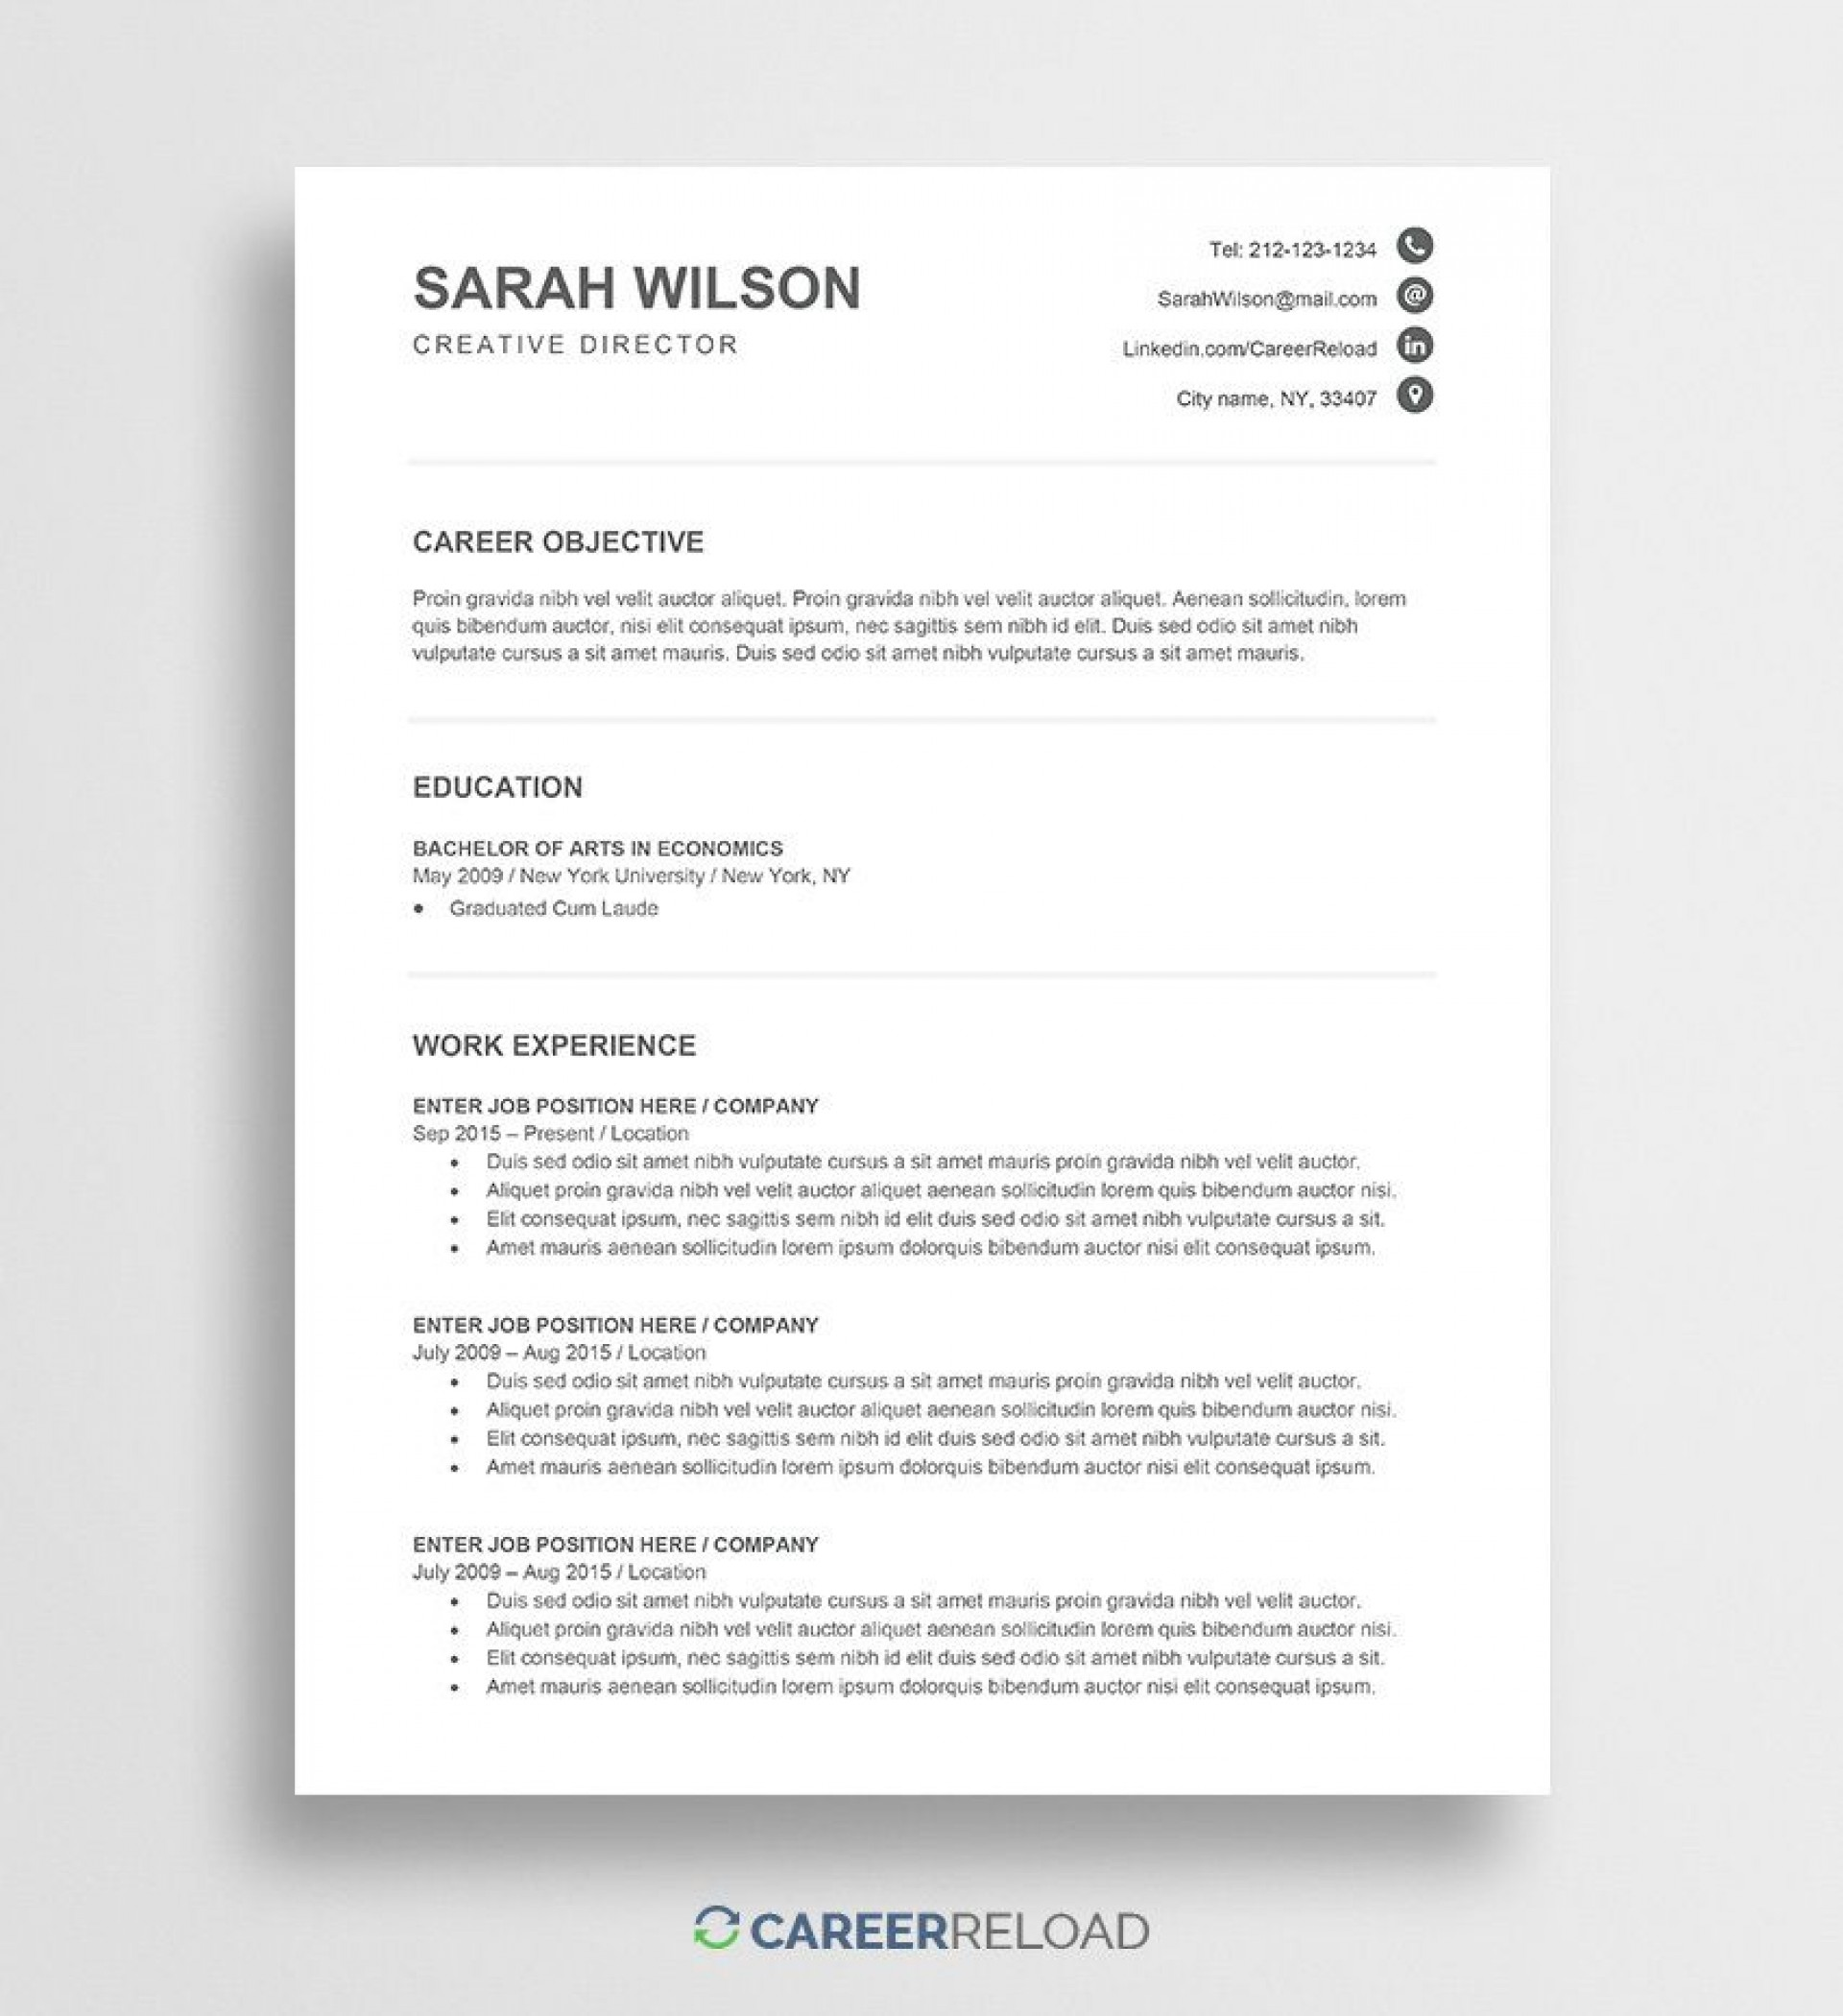 006 Stunning Entry Level Resume Template Word High Definition  Free For1920